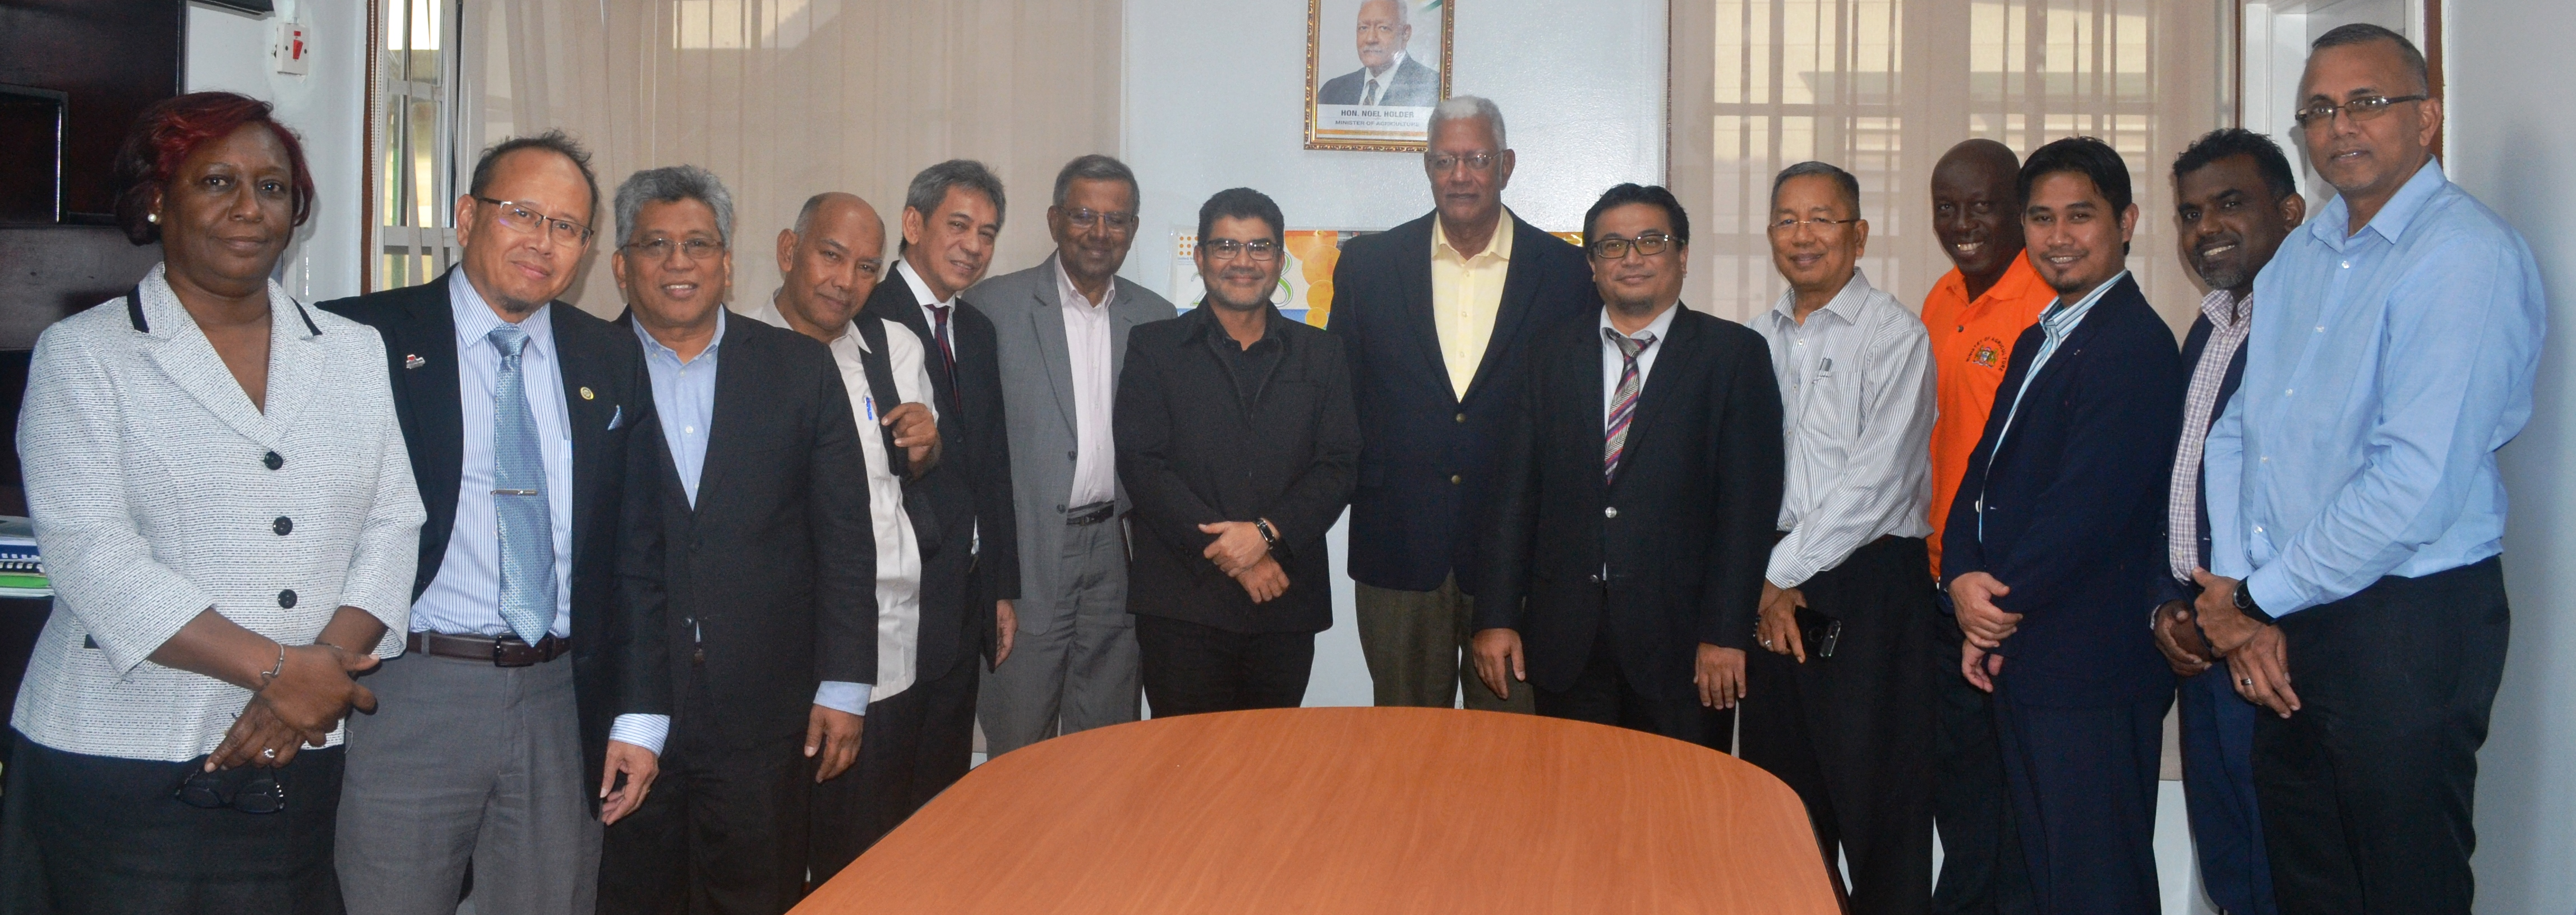 Minister Holder is pictured with the visiting team from from Malaysia and other officials from the MoA and the GRDB